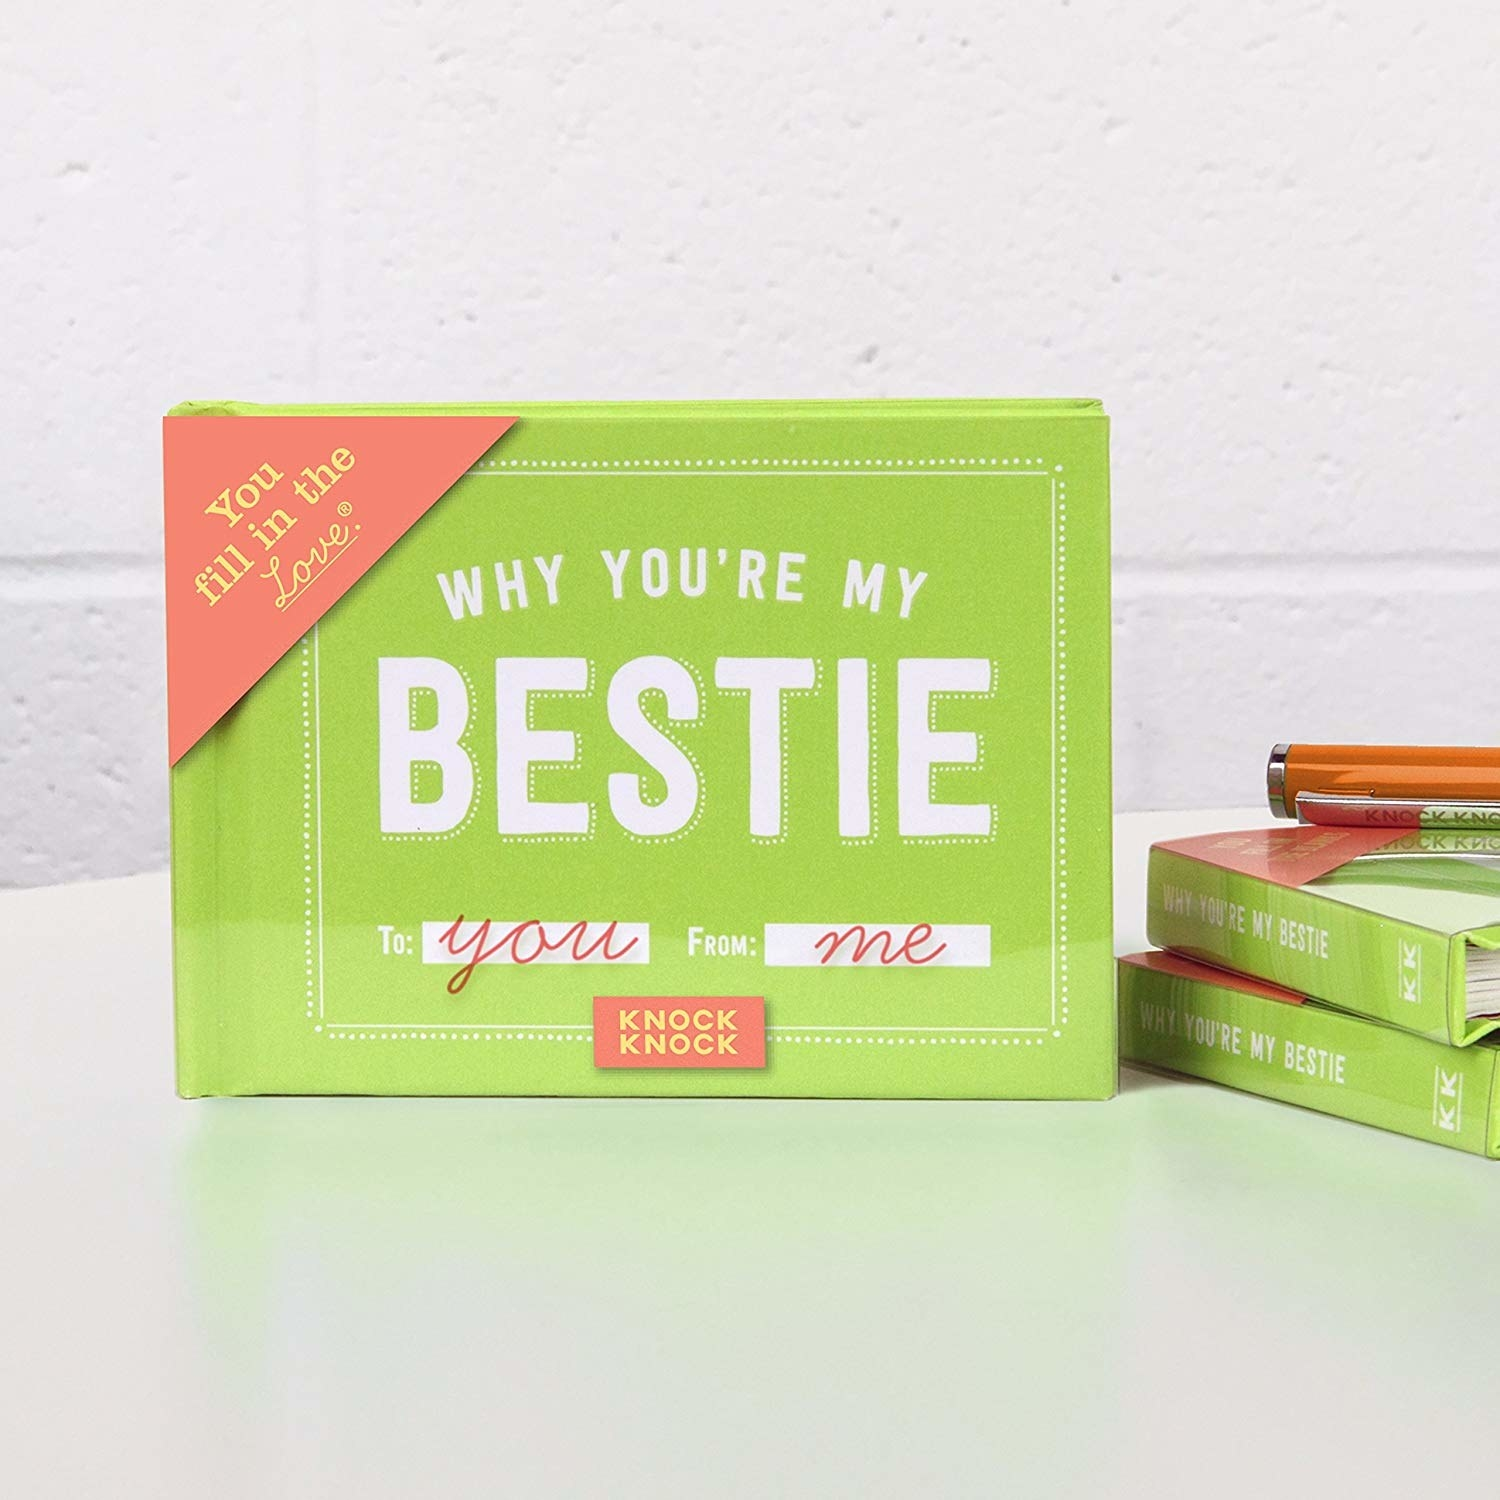 A small book that says why you're my bestie on the cover